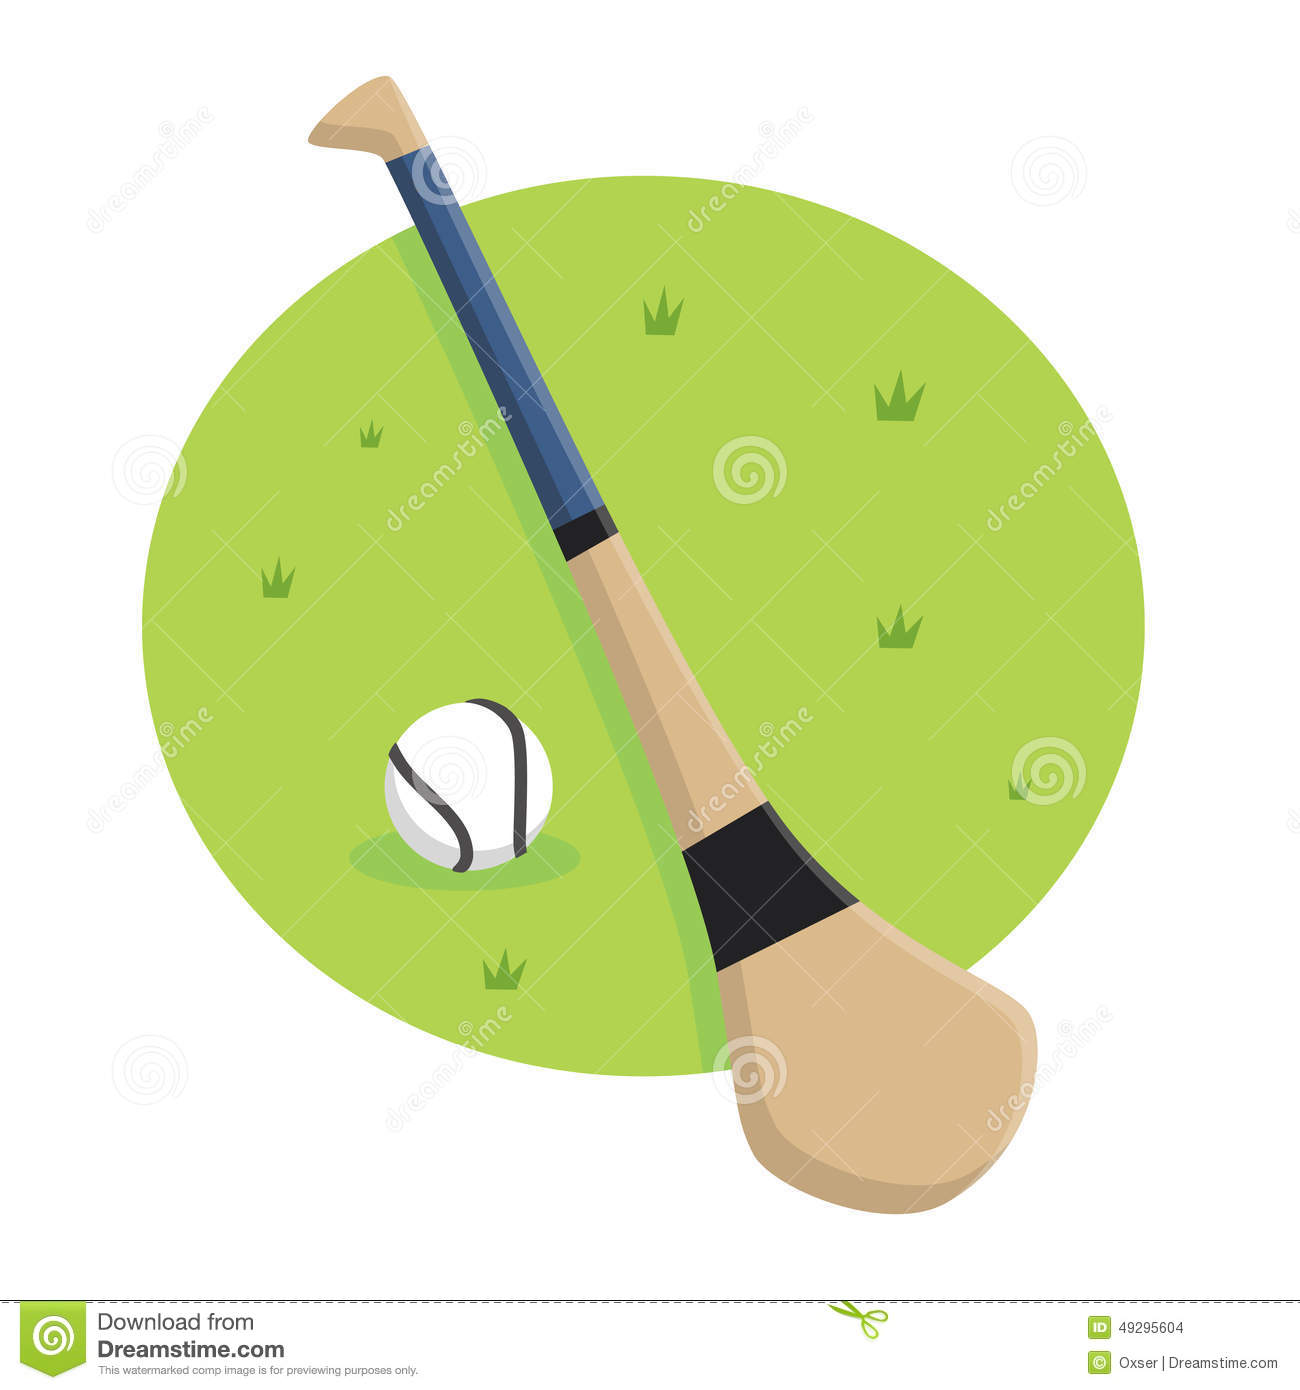 Hurling clipart - Clipground